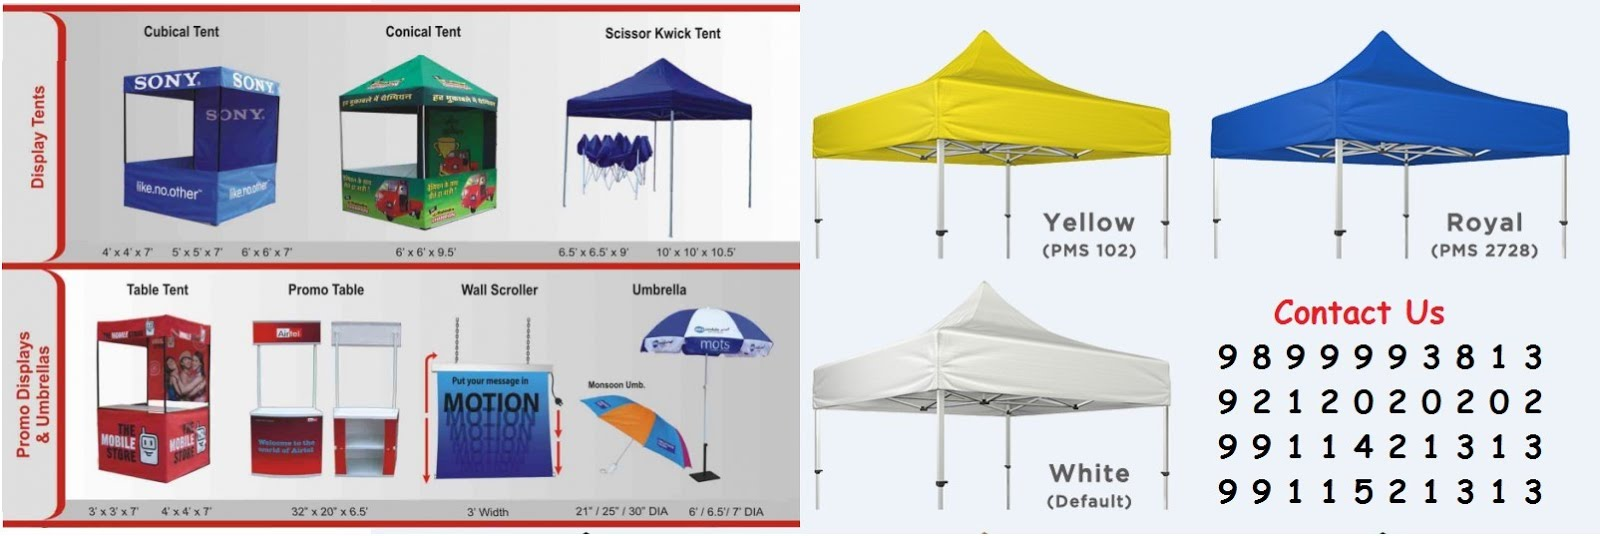 Manufacturers of Display Canopy Tents in New Delhi Supply All Over India  sc 1 th 130 : tent display - memphite.com